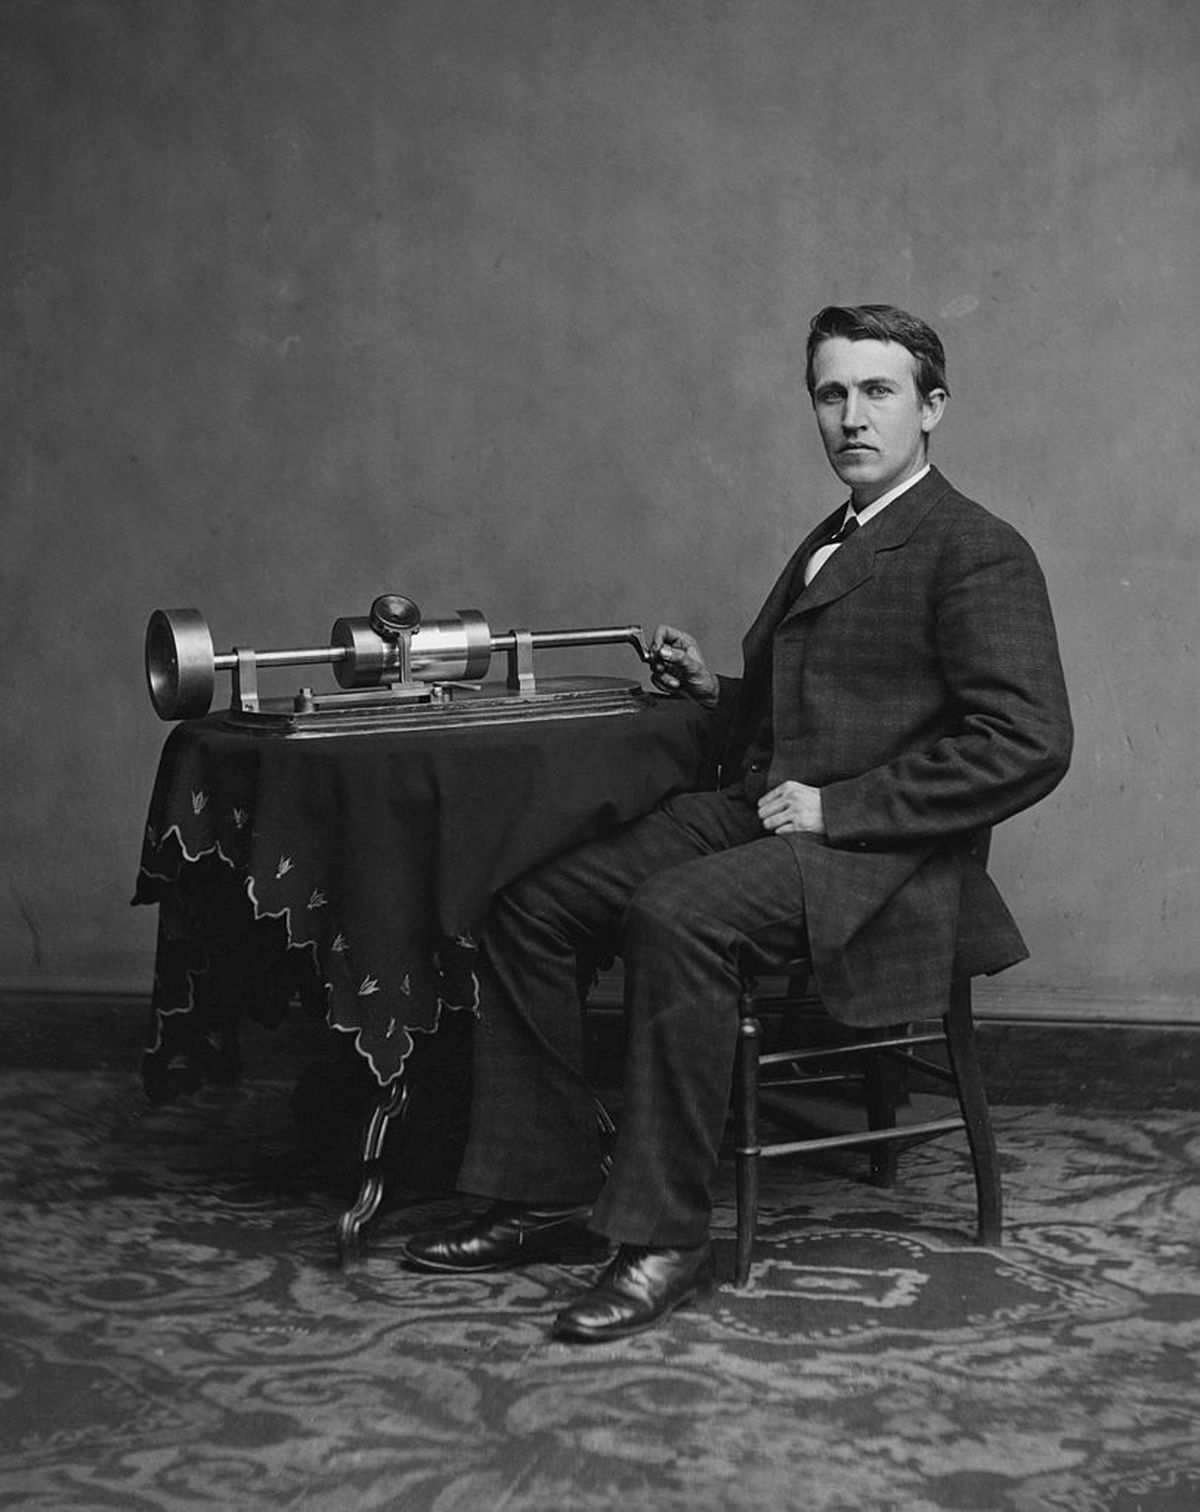 Thomas Edison with his second phonograph, photographed in 1878